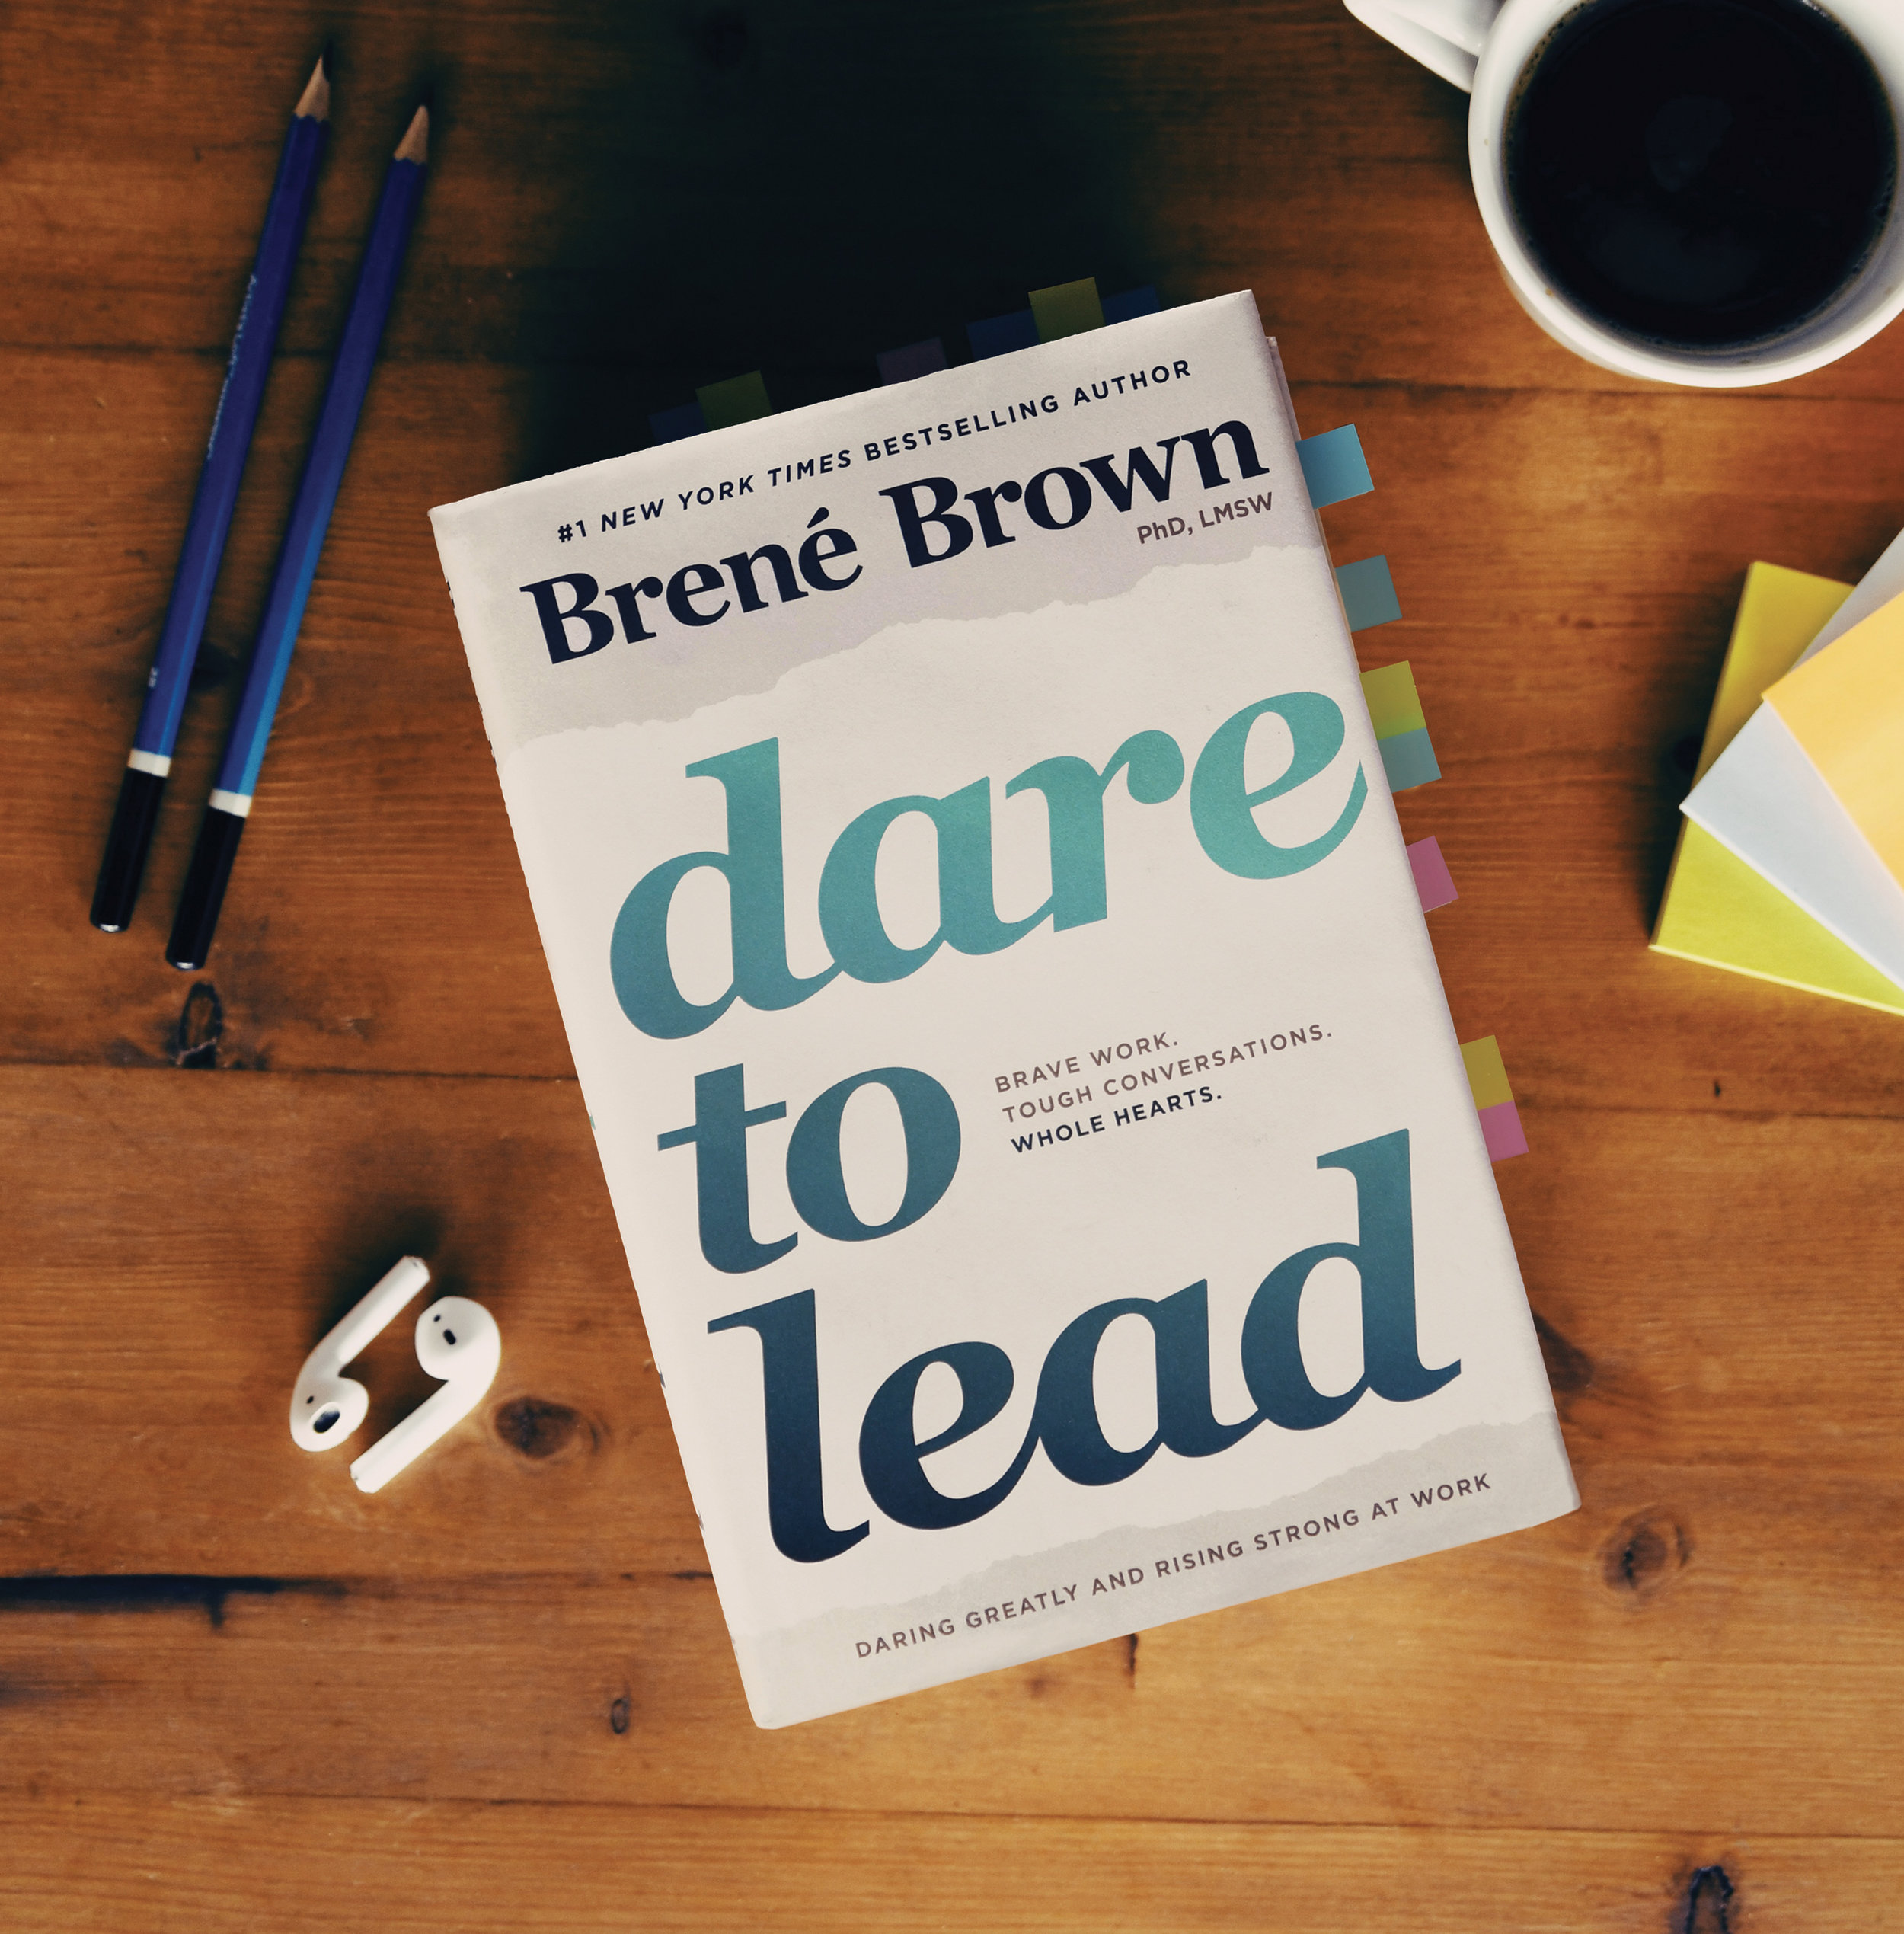 Dare-to-Lead-Cover-Instagram.jpg